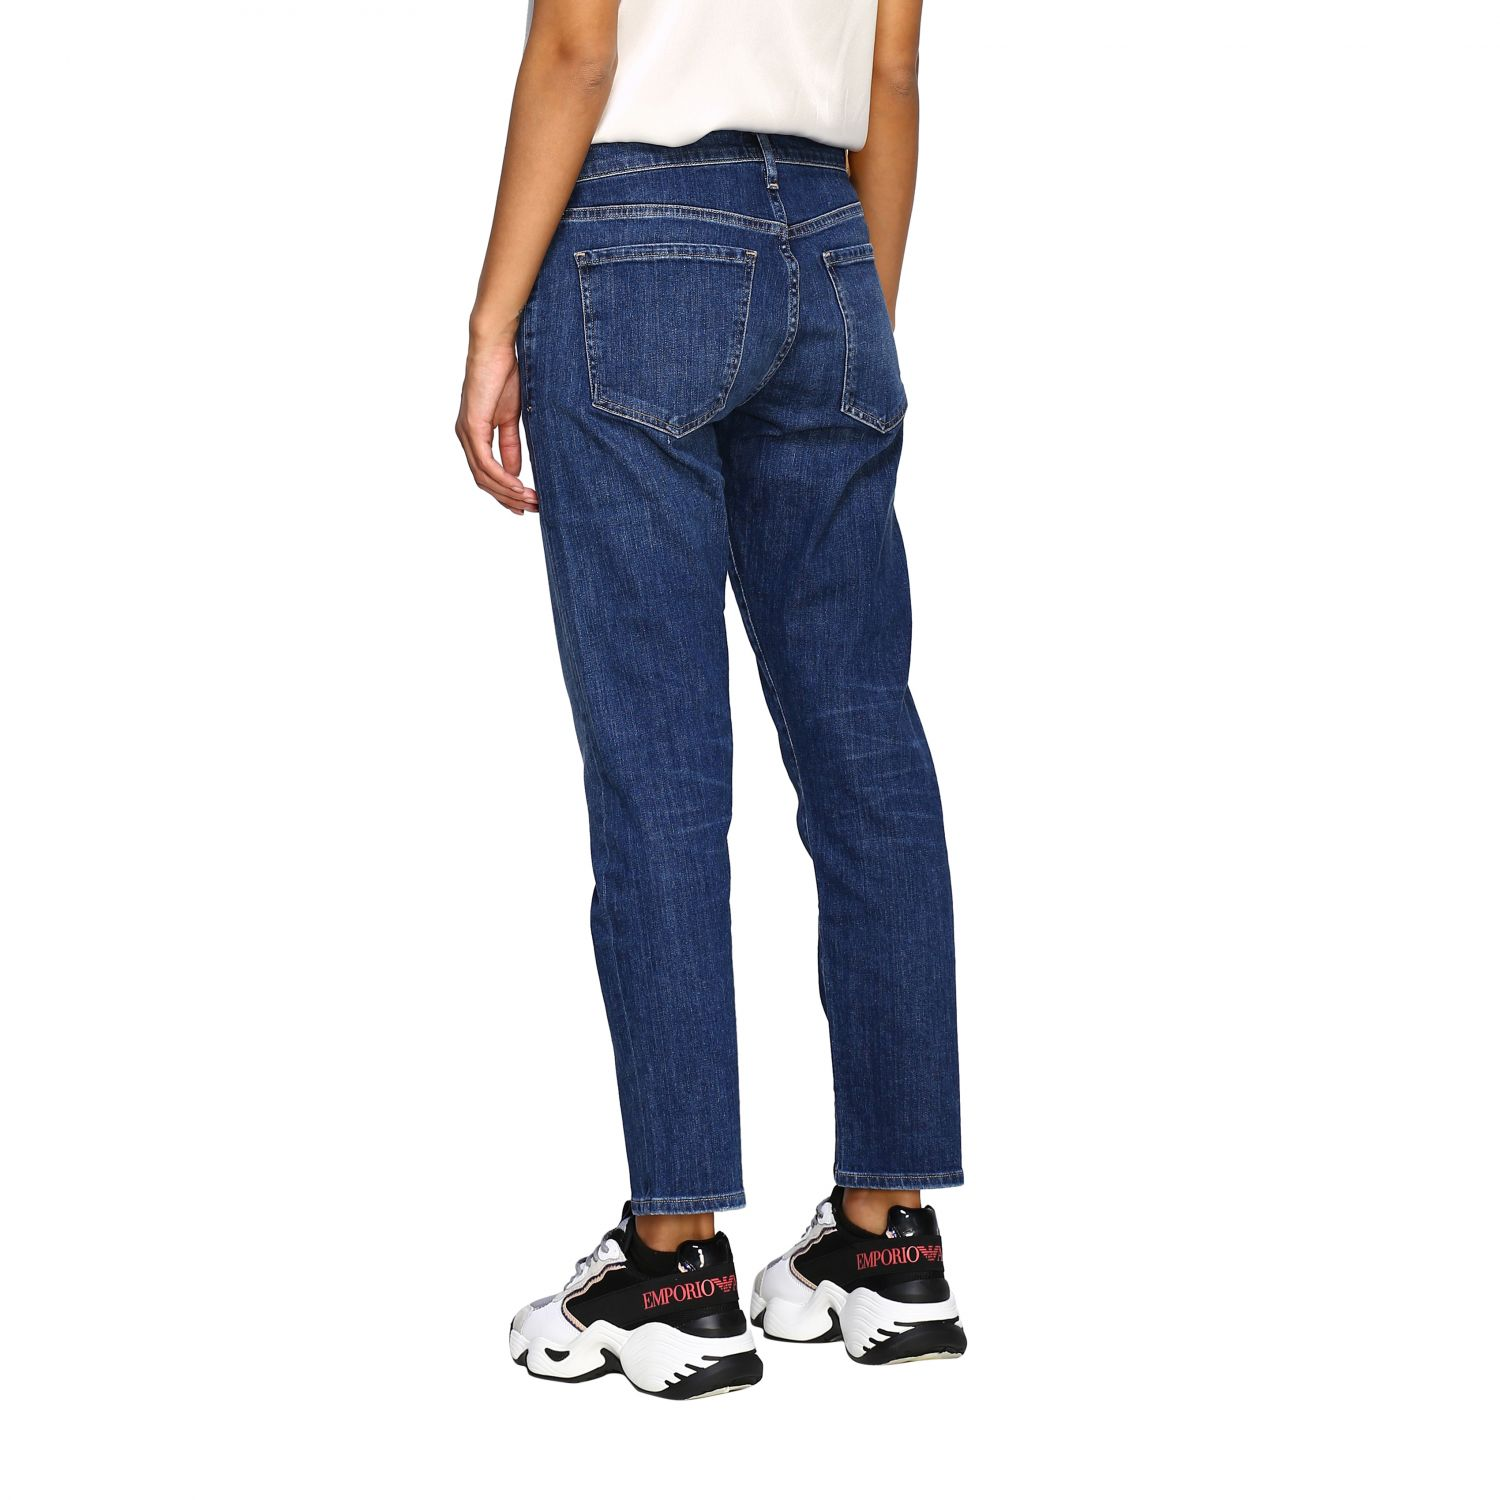 Jeans femme Citizens Of Humanity bleu 3